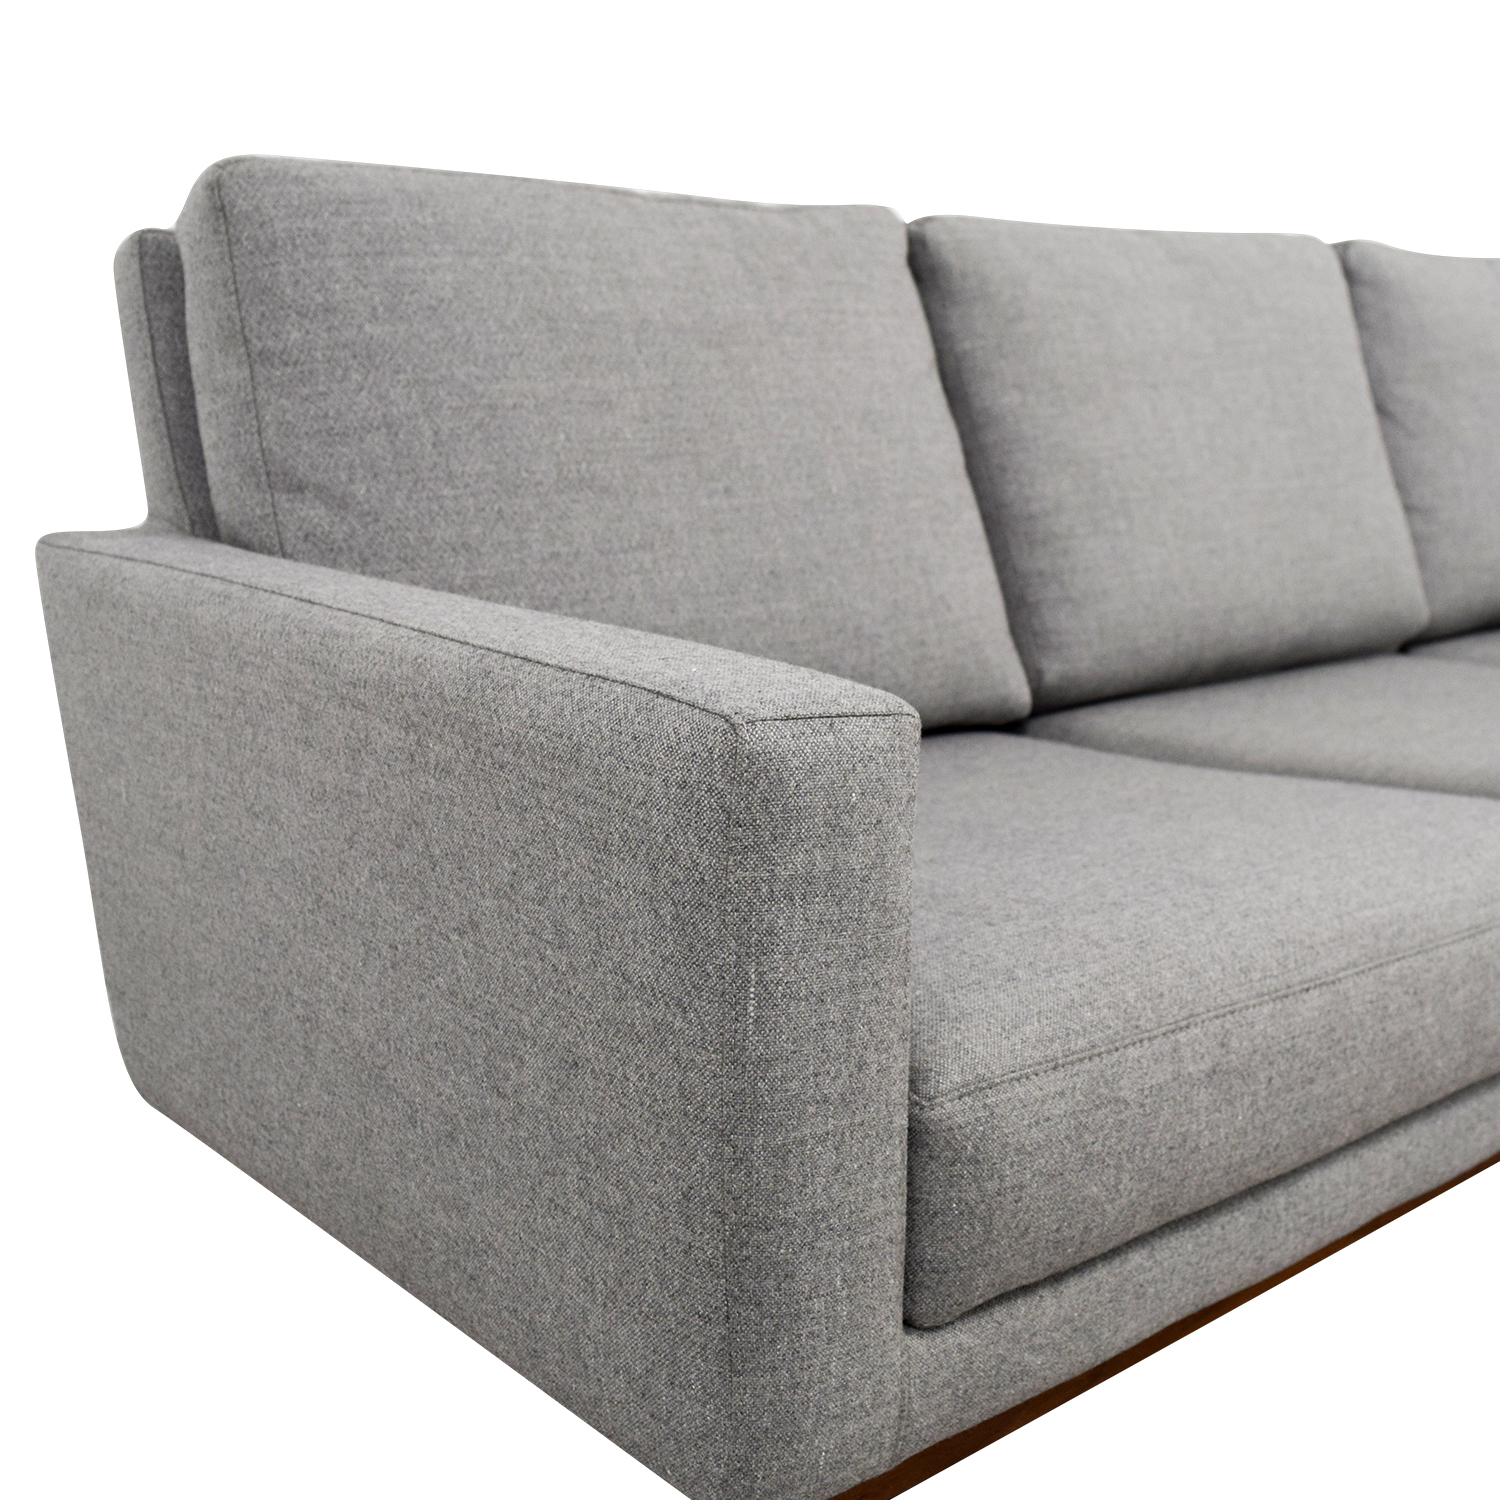 Design Within Reach Design Within Reach Raleigh Light Grey Ducale Wool Sofa nyc